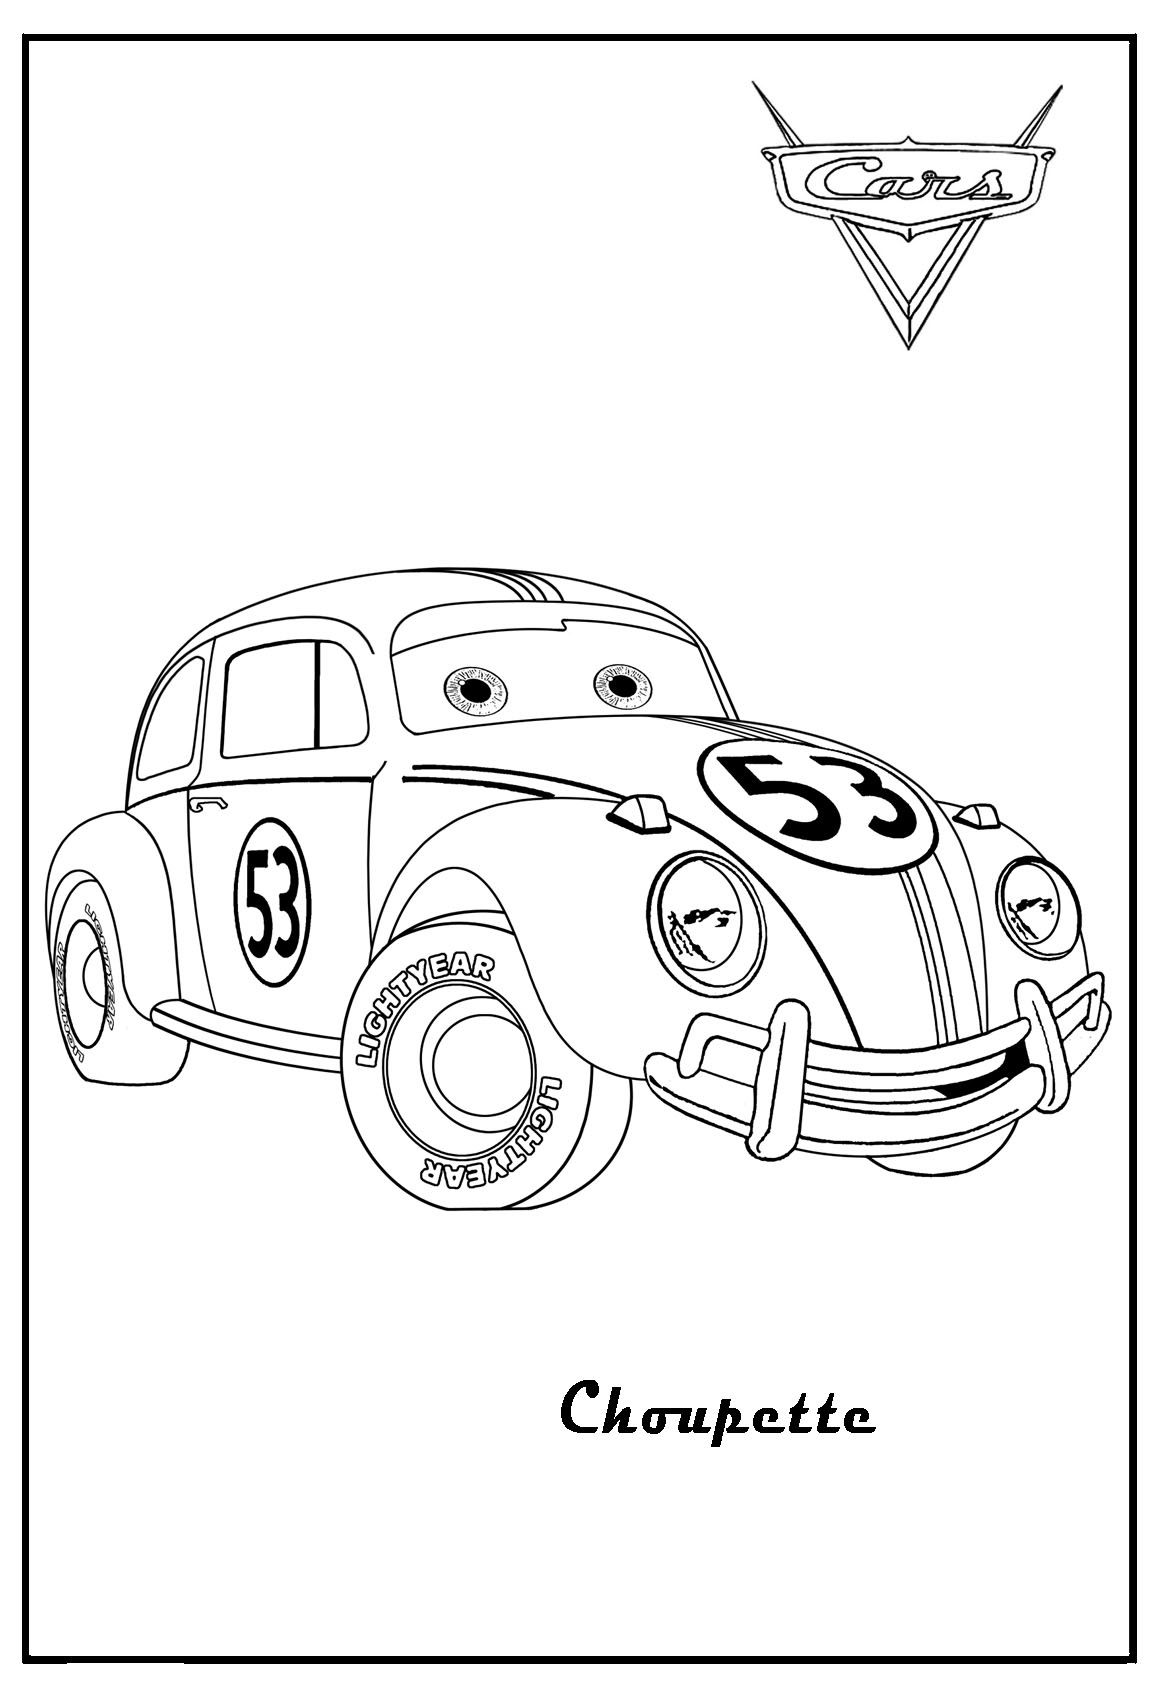 cars 2 printable coloring pages - photo#30